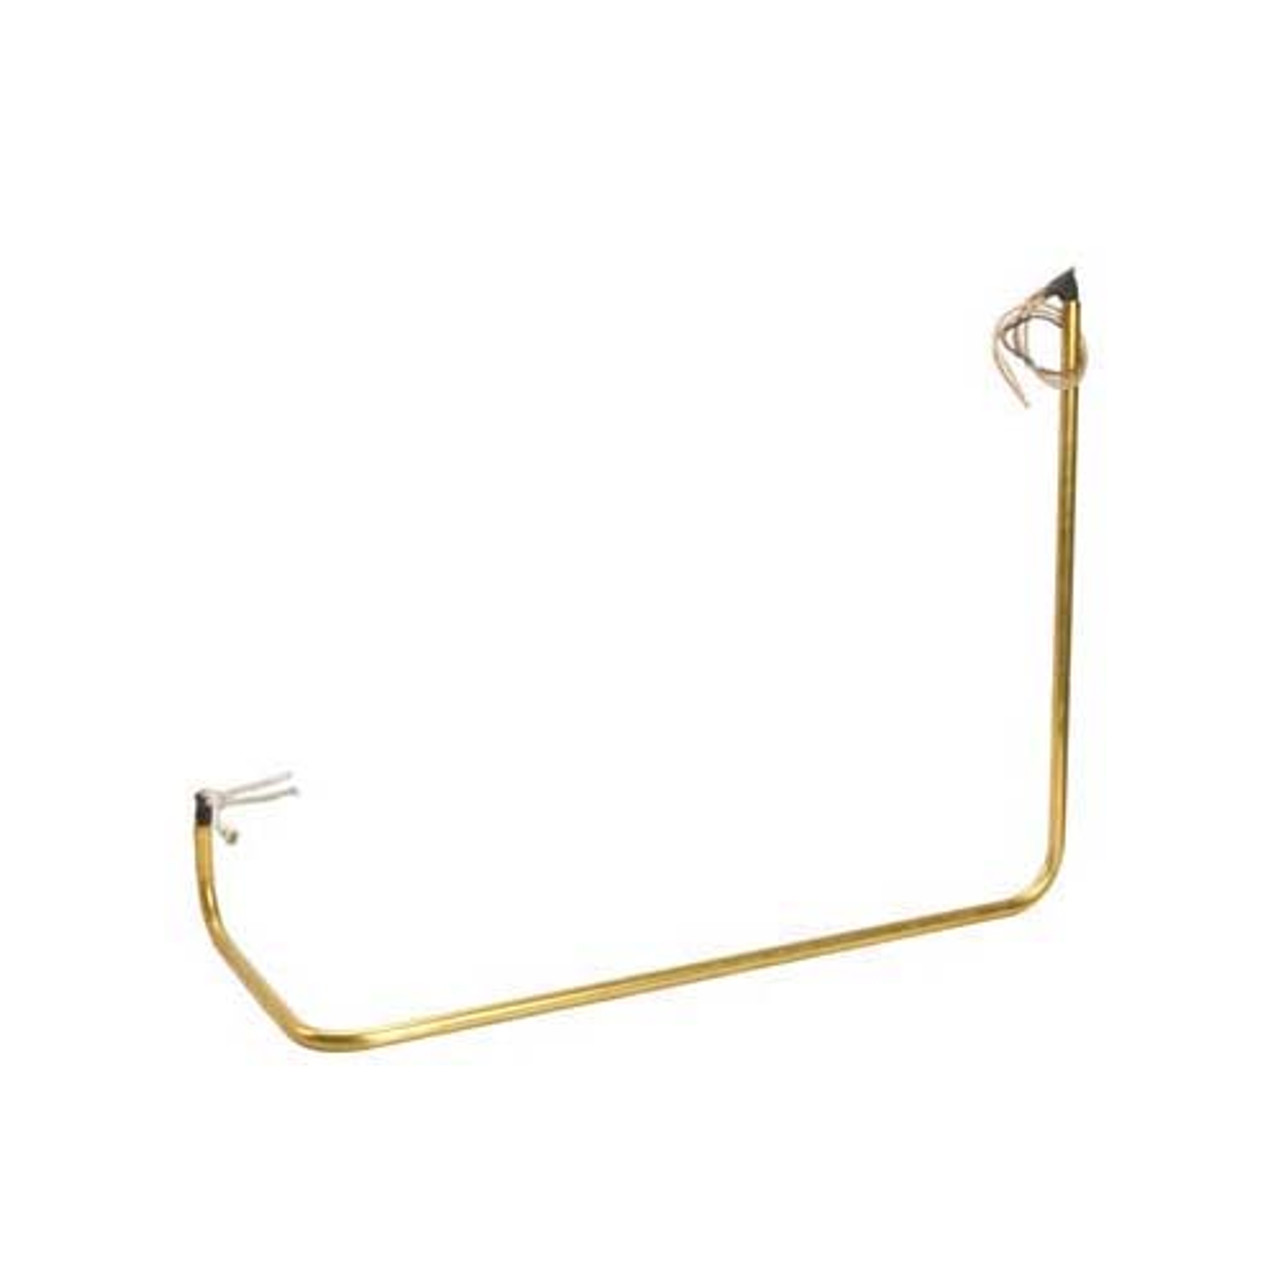 SOUTHBEND 5219-1 THERMOCOUPLE TUBEBRASS